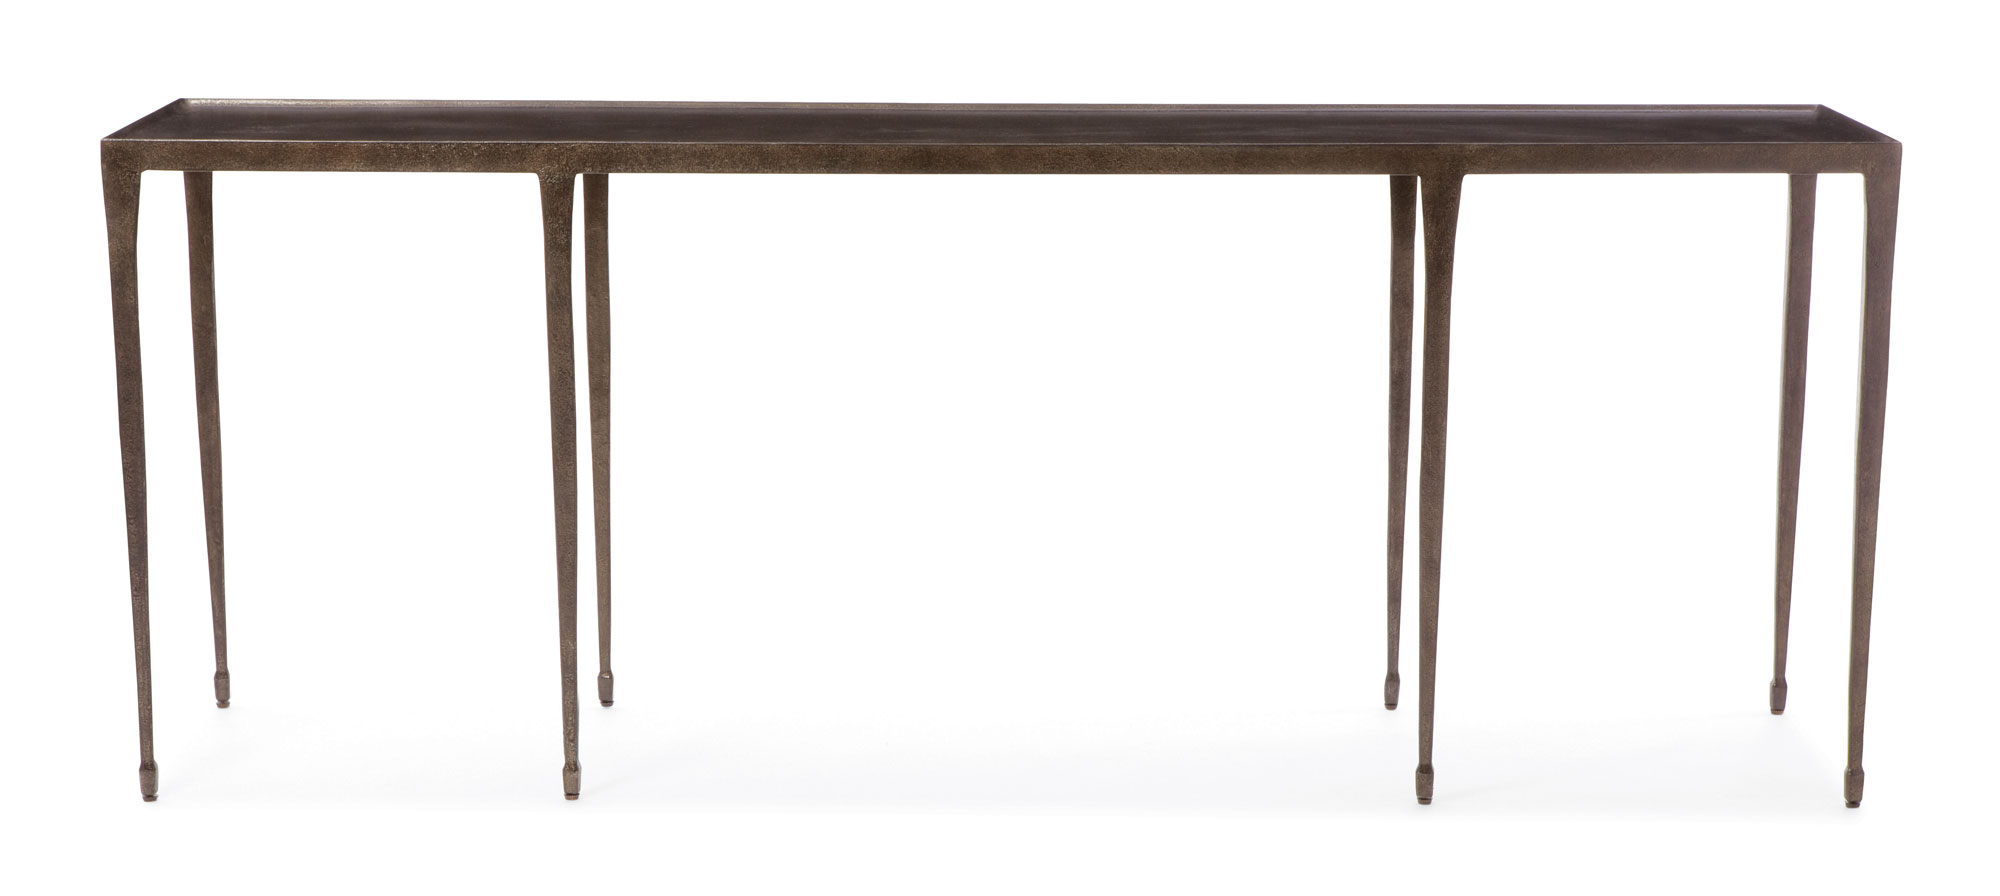 20 Ideas Of Silviano 84 Inch Console Tables